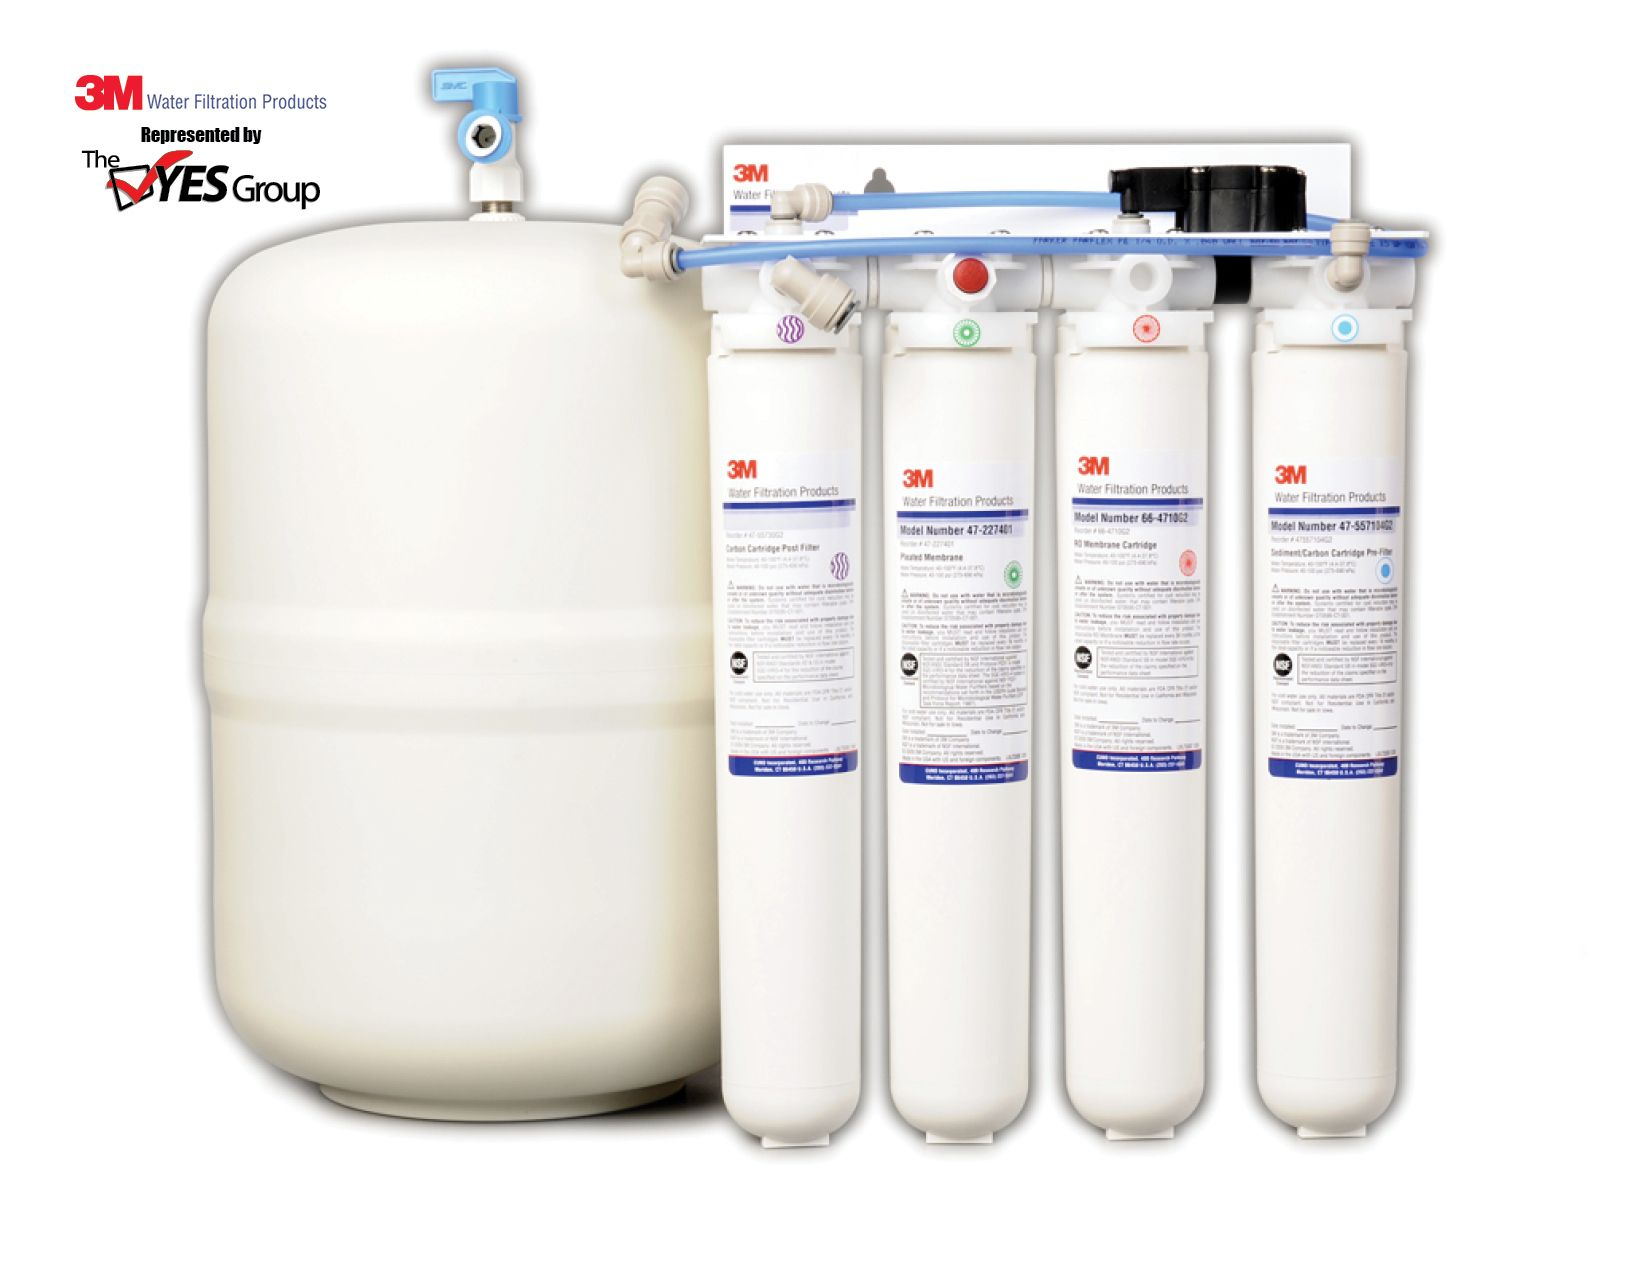 3M Water Filtration Water Filters